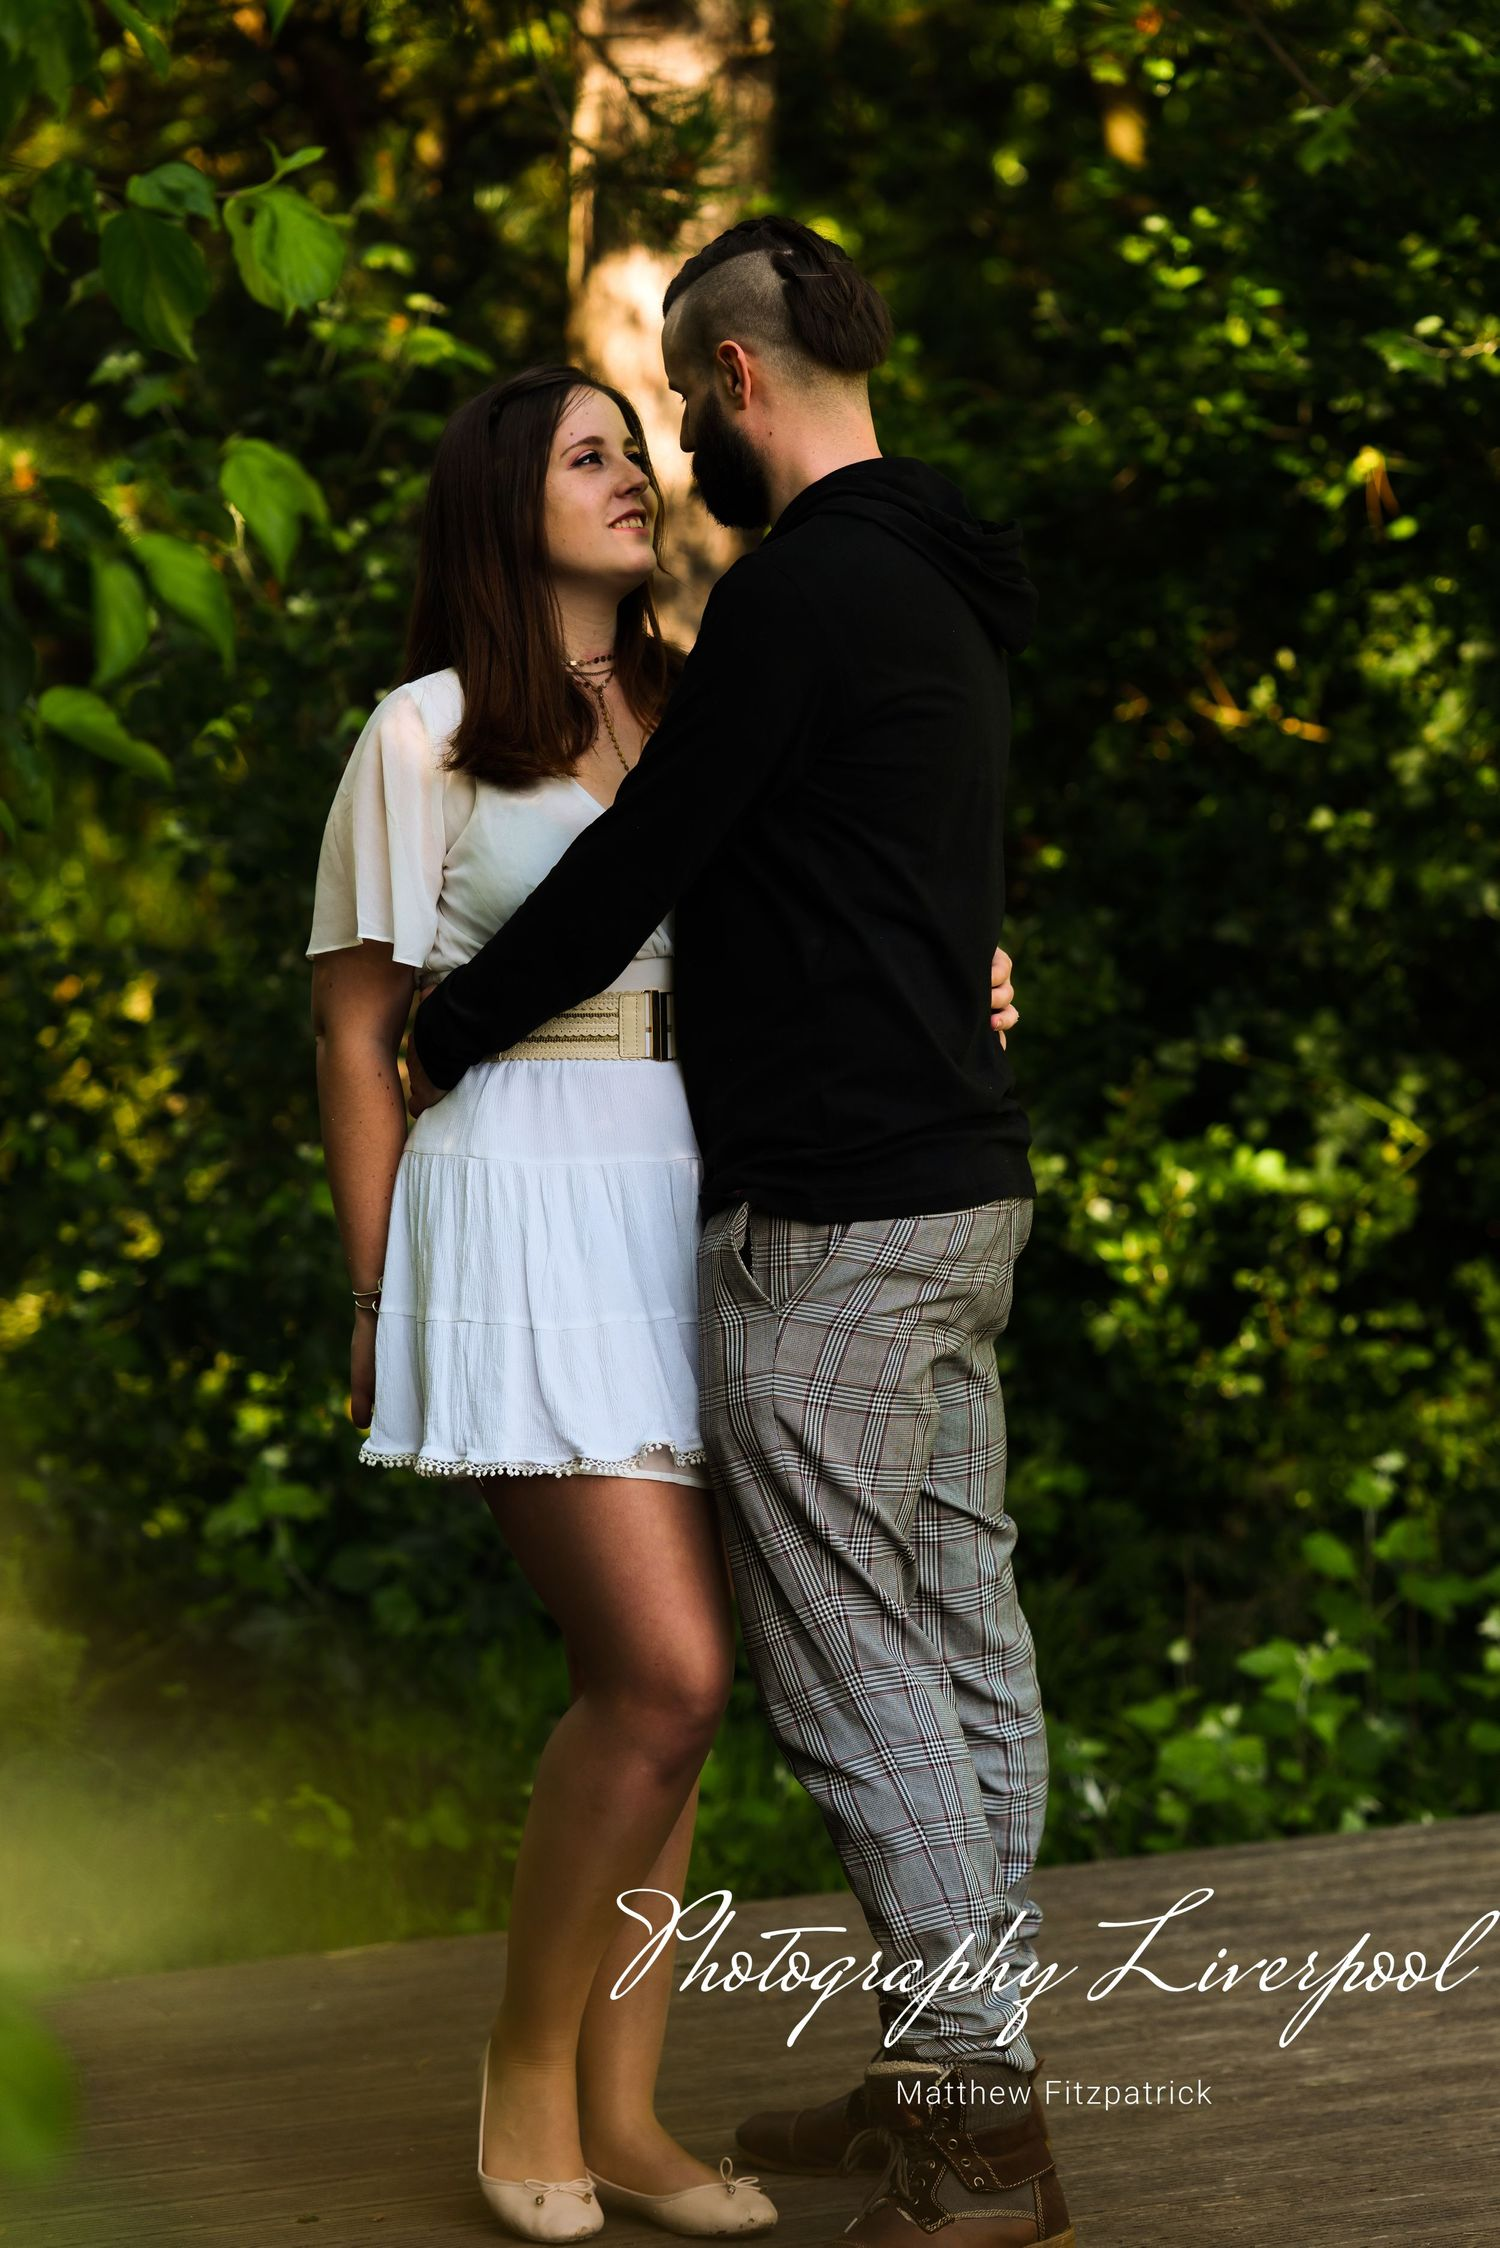 Naturally posed engagement photography at Liverpool Festival Gardens by Photography Liverpool